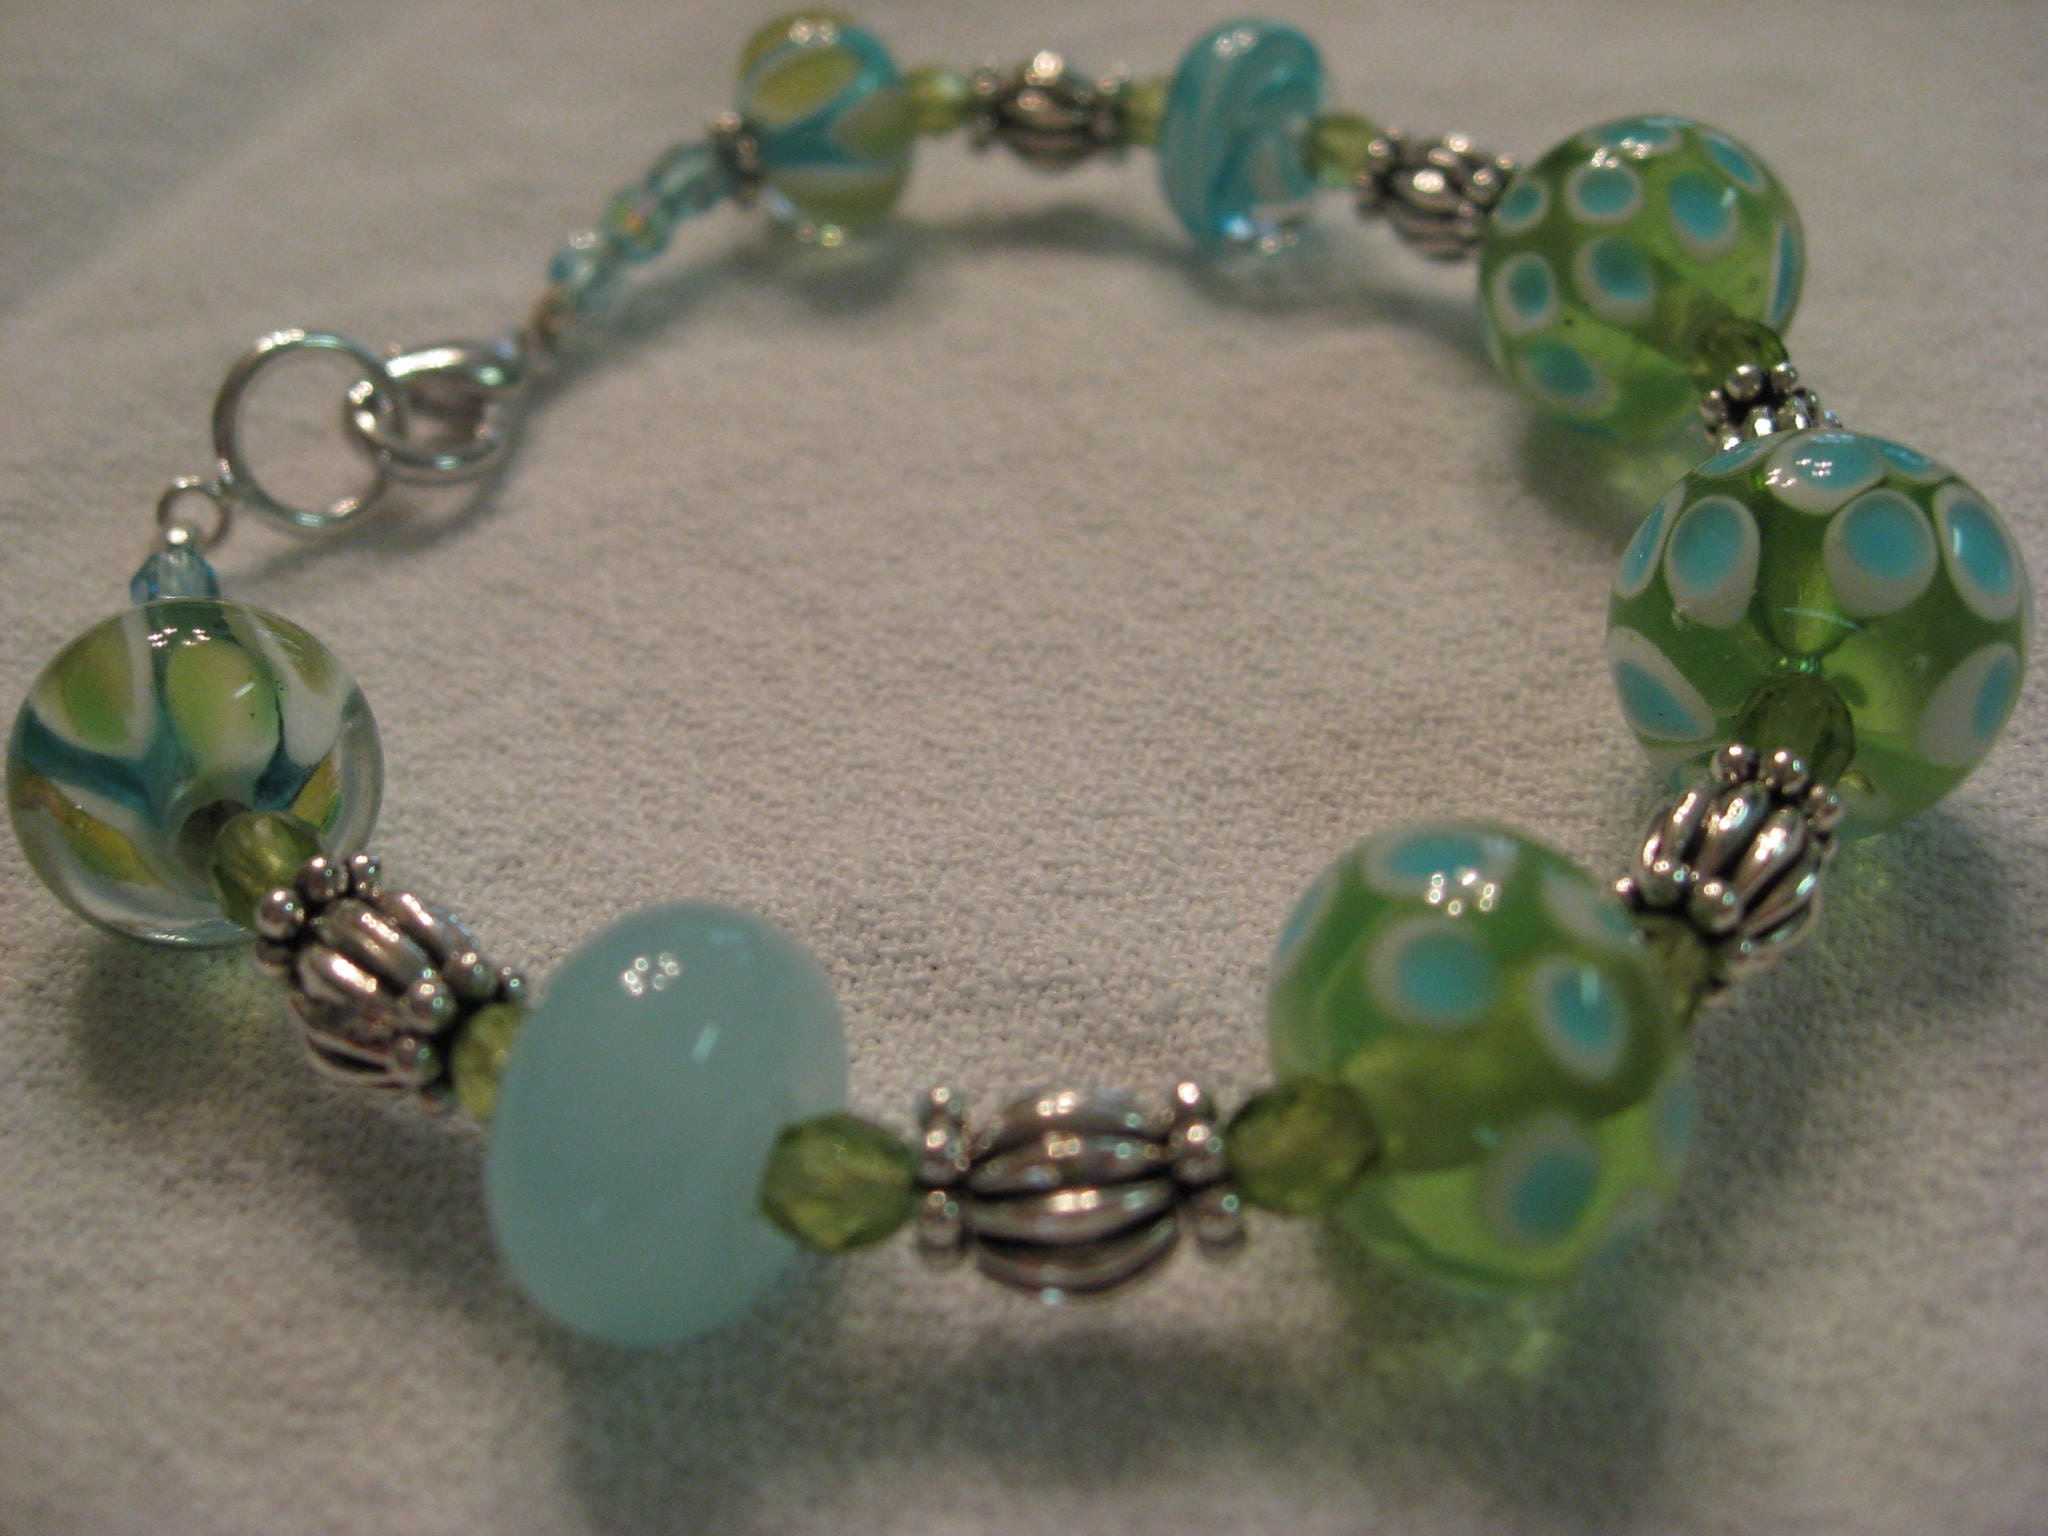 Unique Sea Glass Blue and Green Handcrafted Lampwork Beads and Sterling Silver Beaded Bracelet